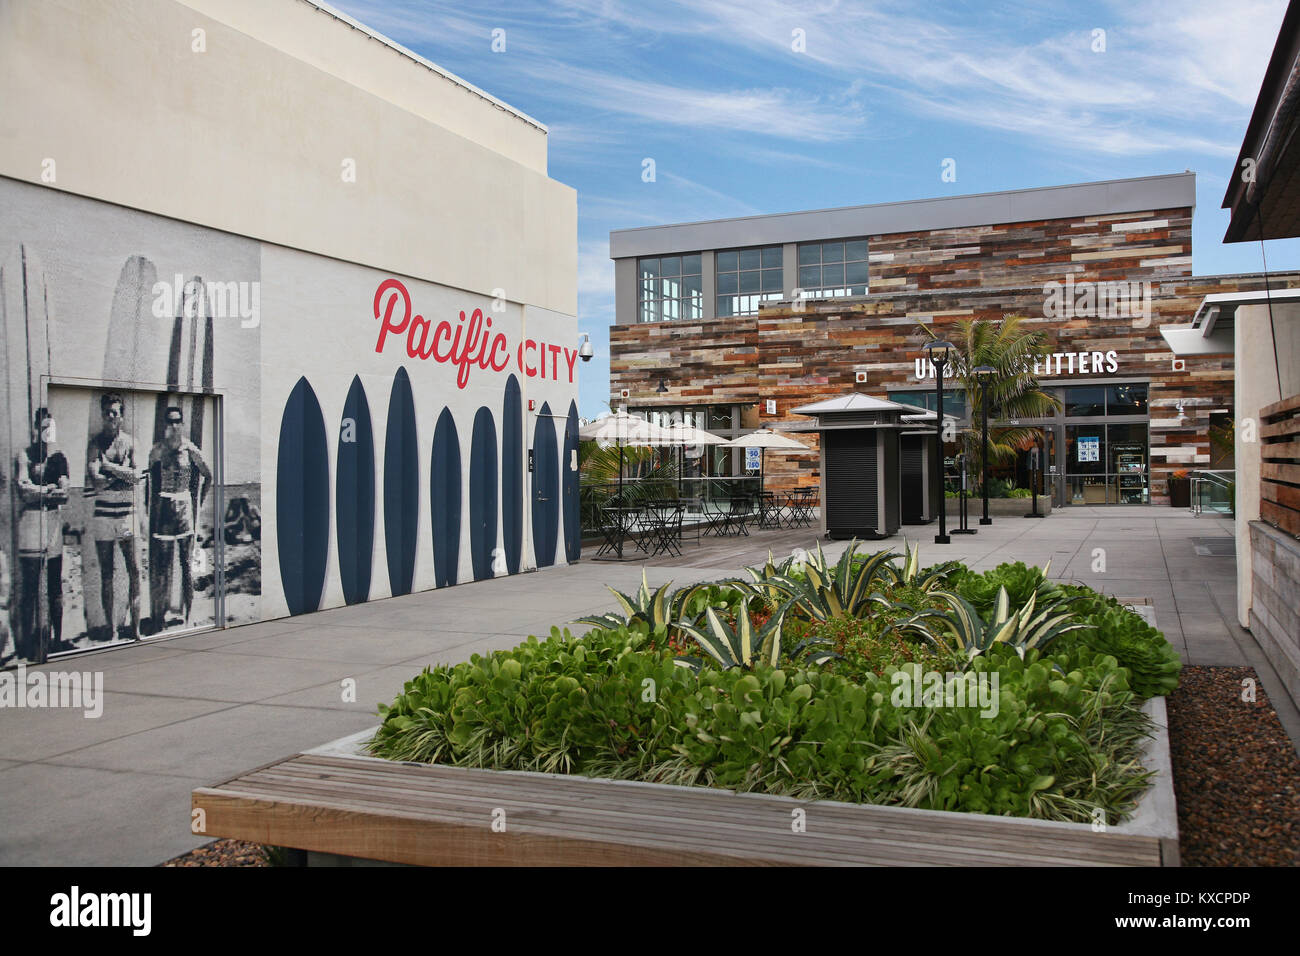 Pacific City, Huntington Beach, shopping, mall, new shopping center, PCH - Stock Image